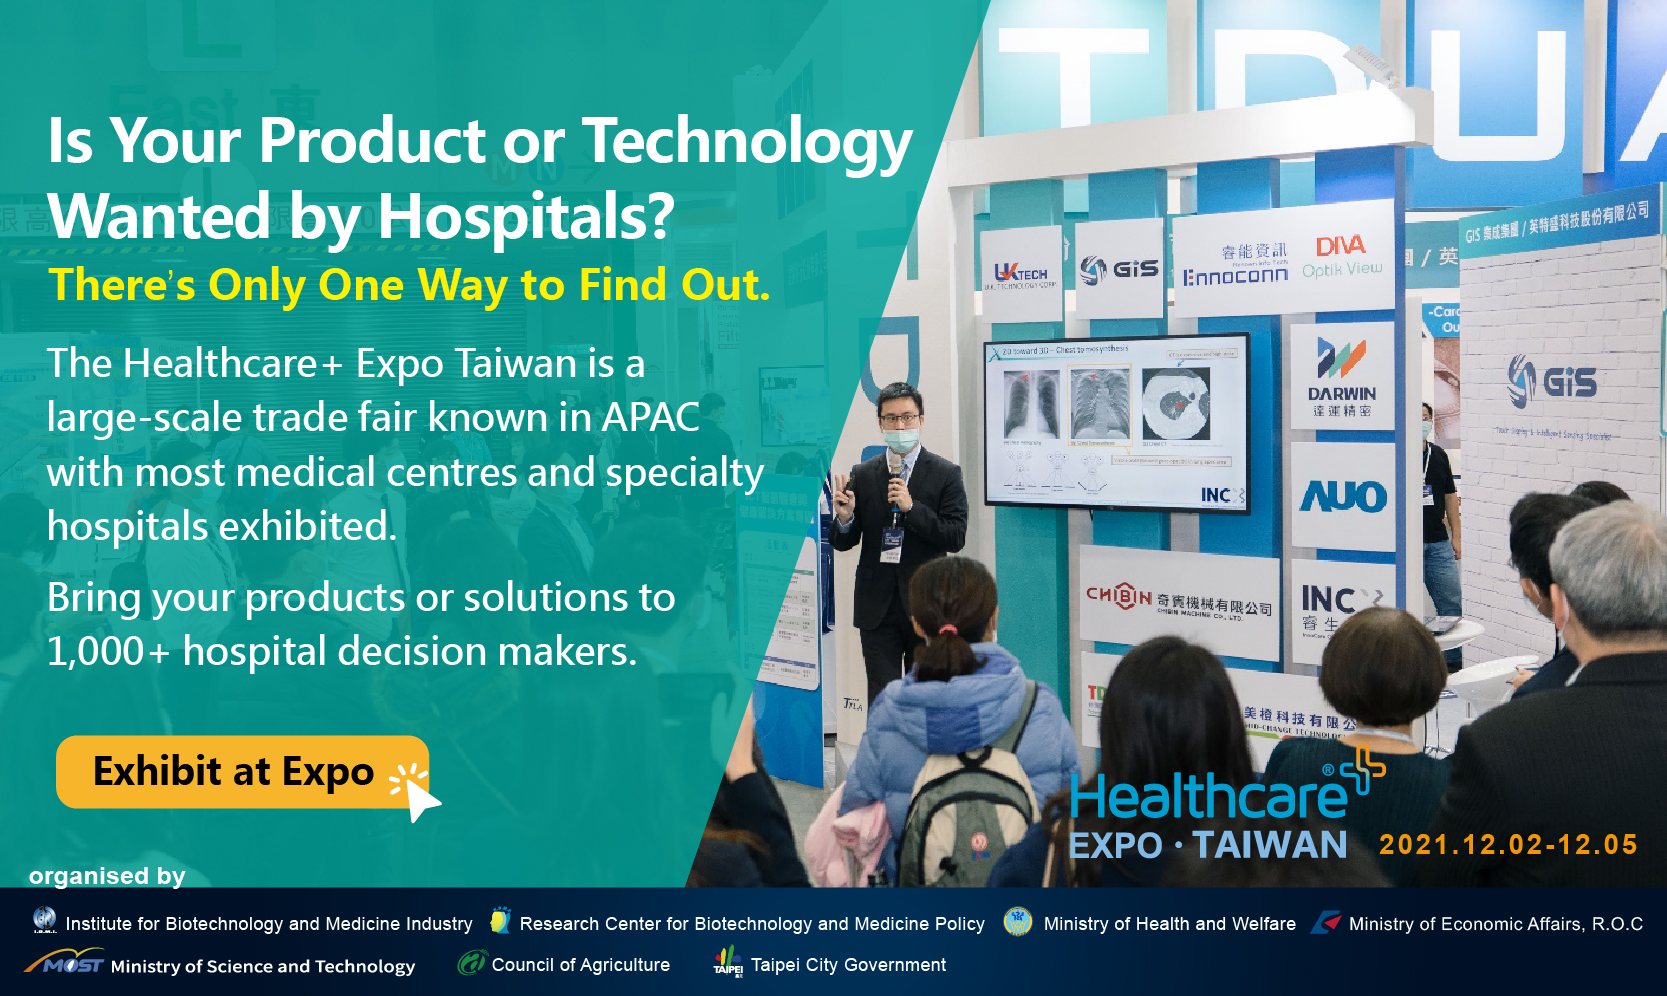 Healthcare+ Expo: Is your product or technology wanted by hospitals? Find out in here